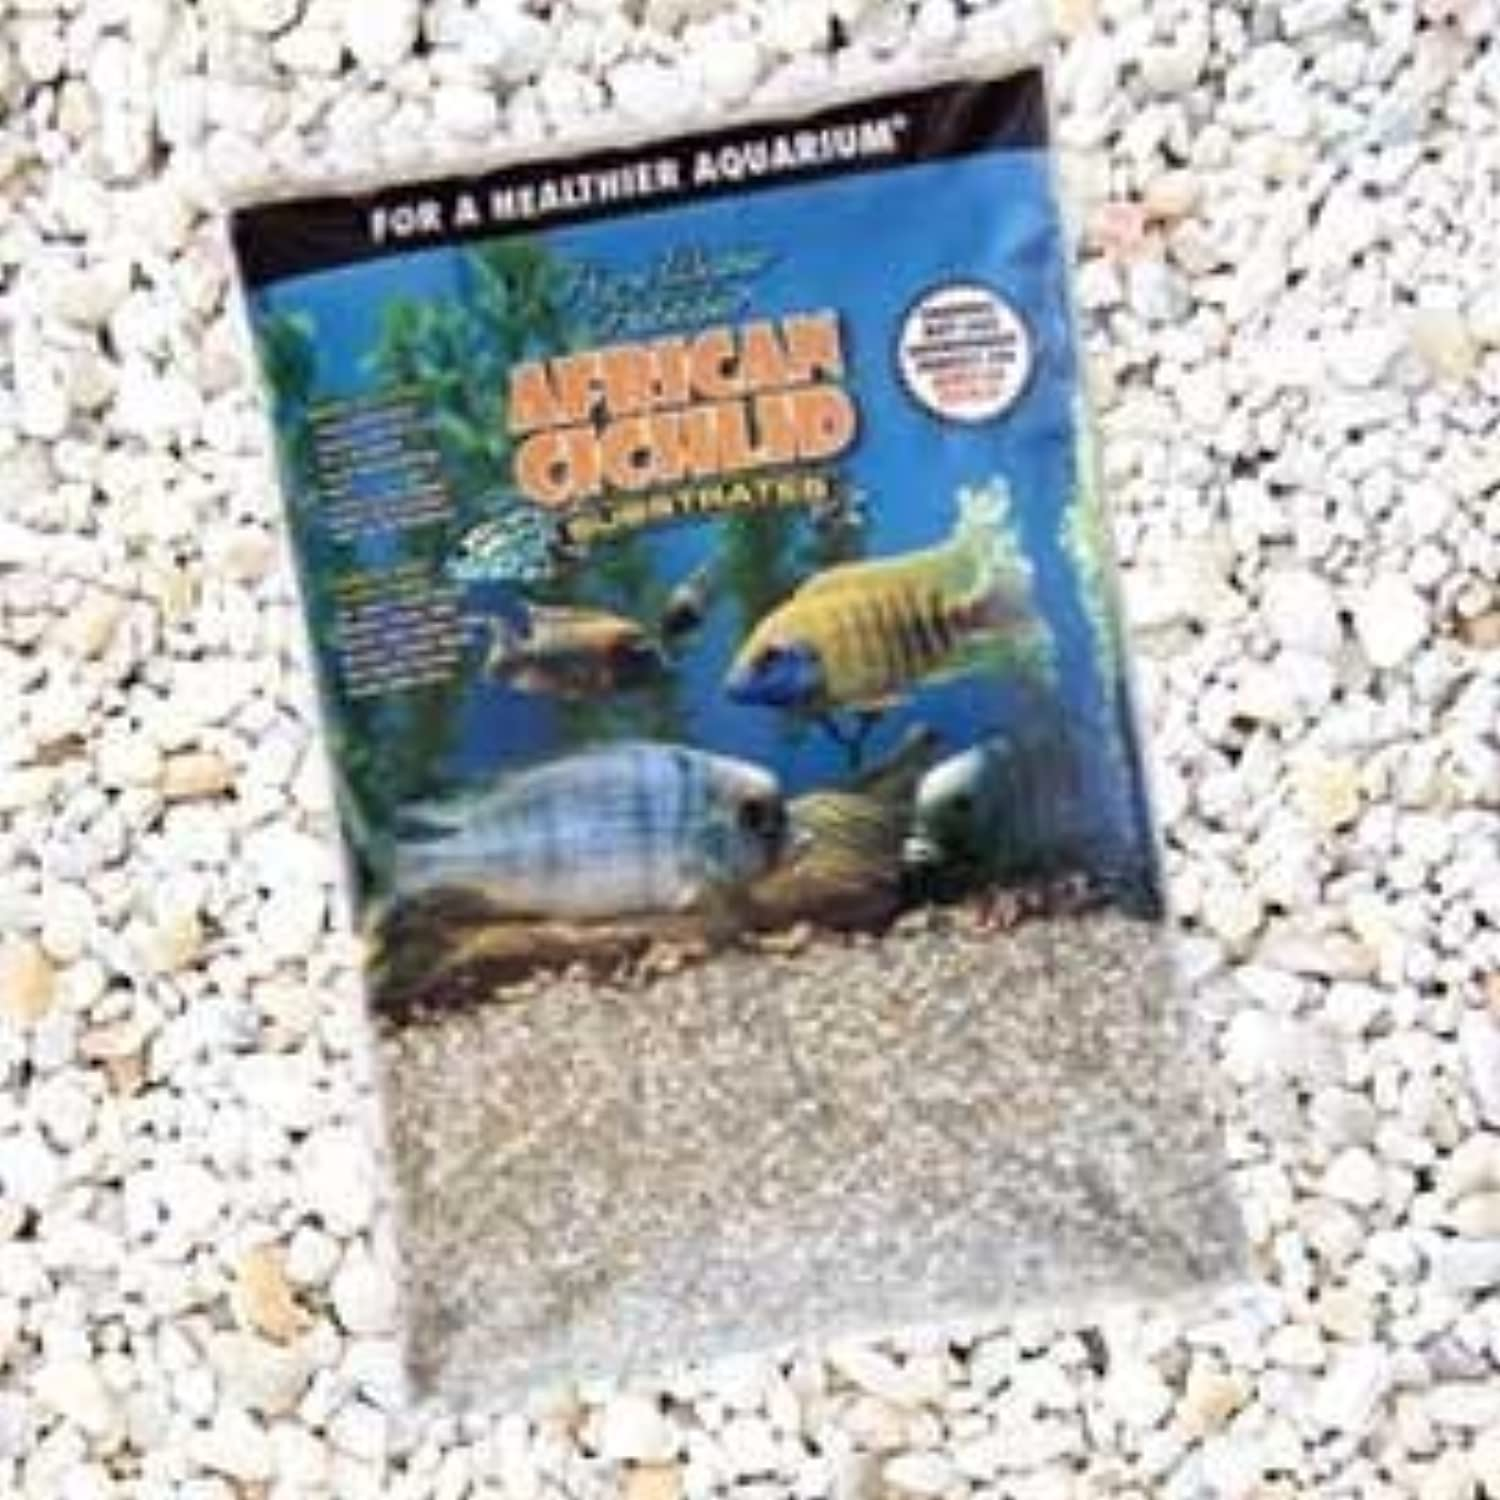 African Cichlid Substrates Rift Lake Gravel for Aquarium, 20Pound, Dry by WORLD WIDE IMPORTS ENT., INC.